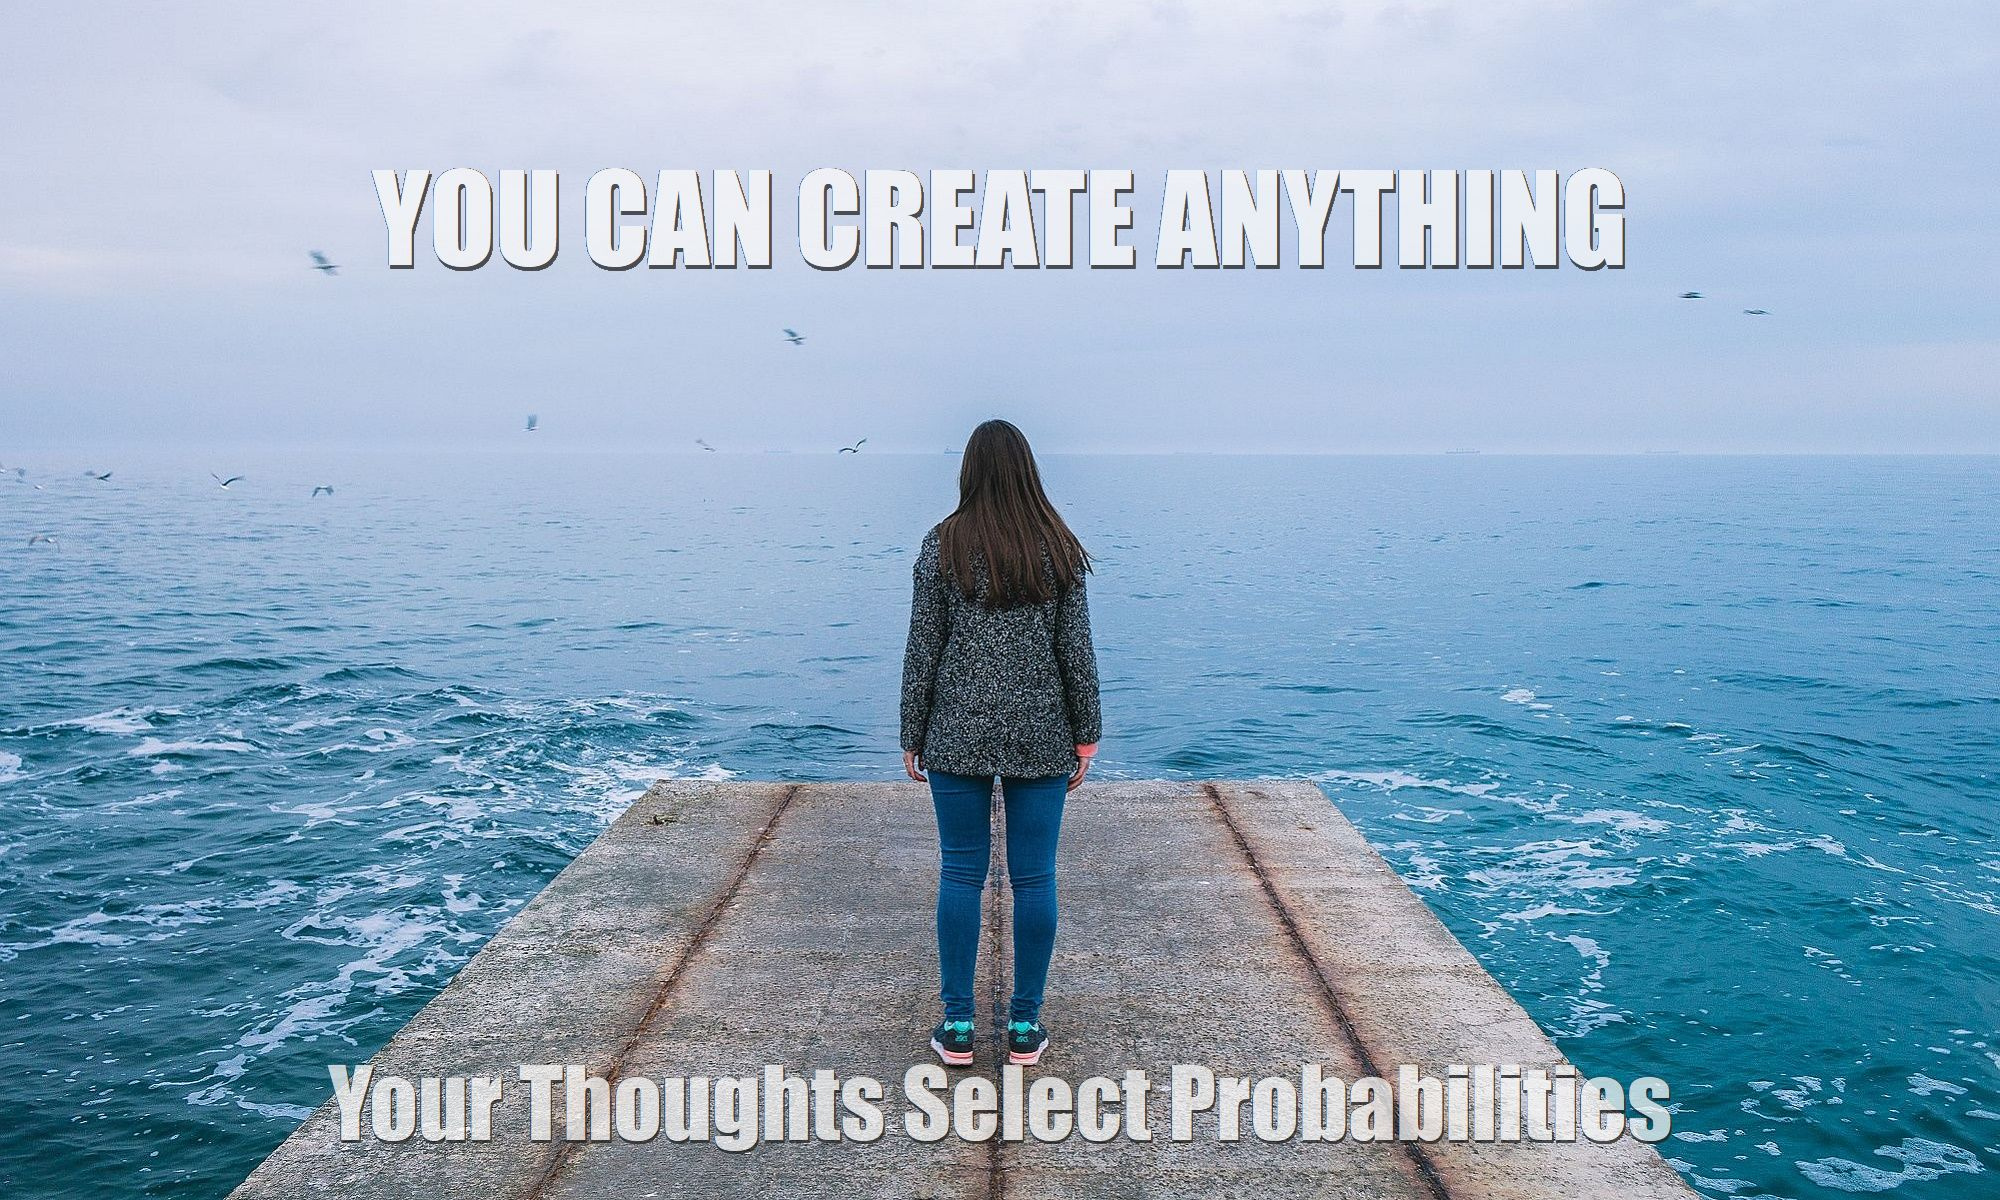 many-worlds-alternate-parallel-realities-how-your-thoughts-attract-select-create-manifest-events-reality-a-2000